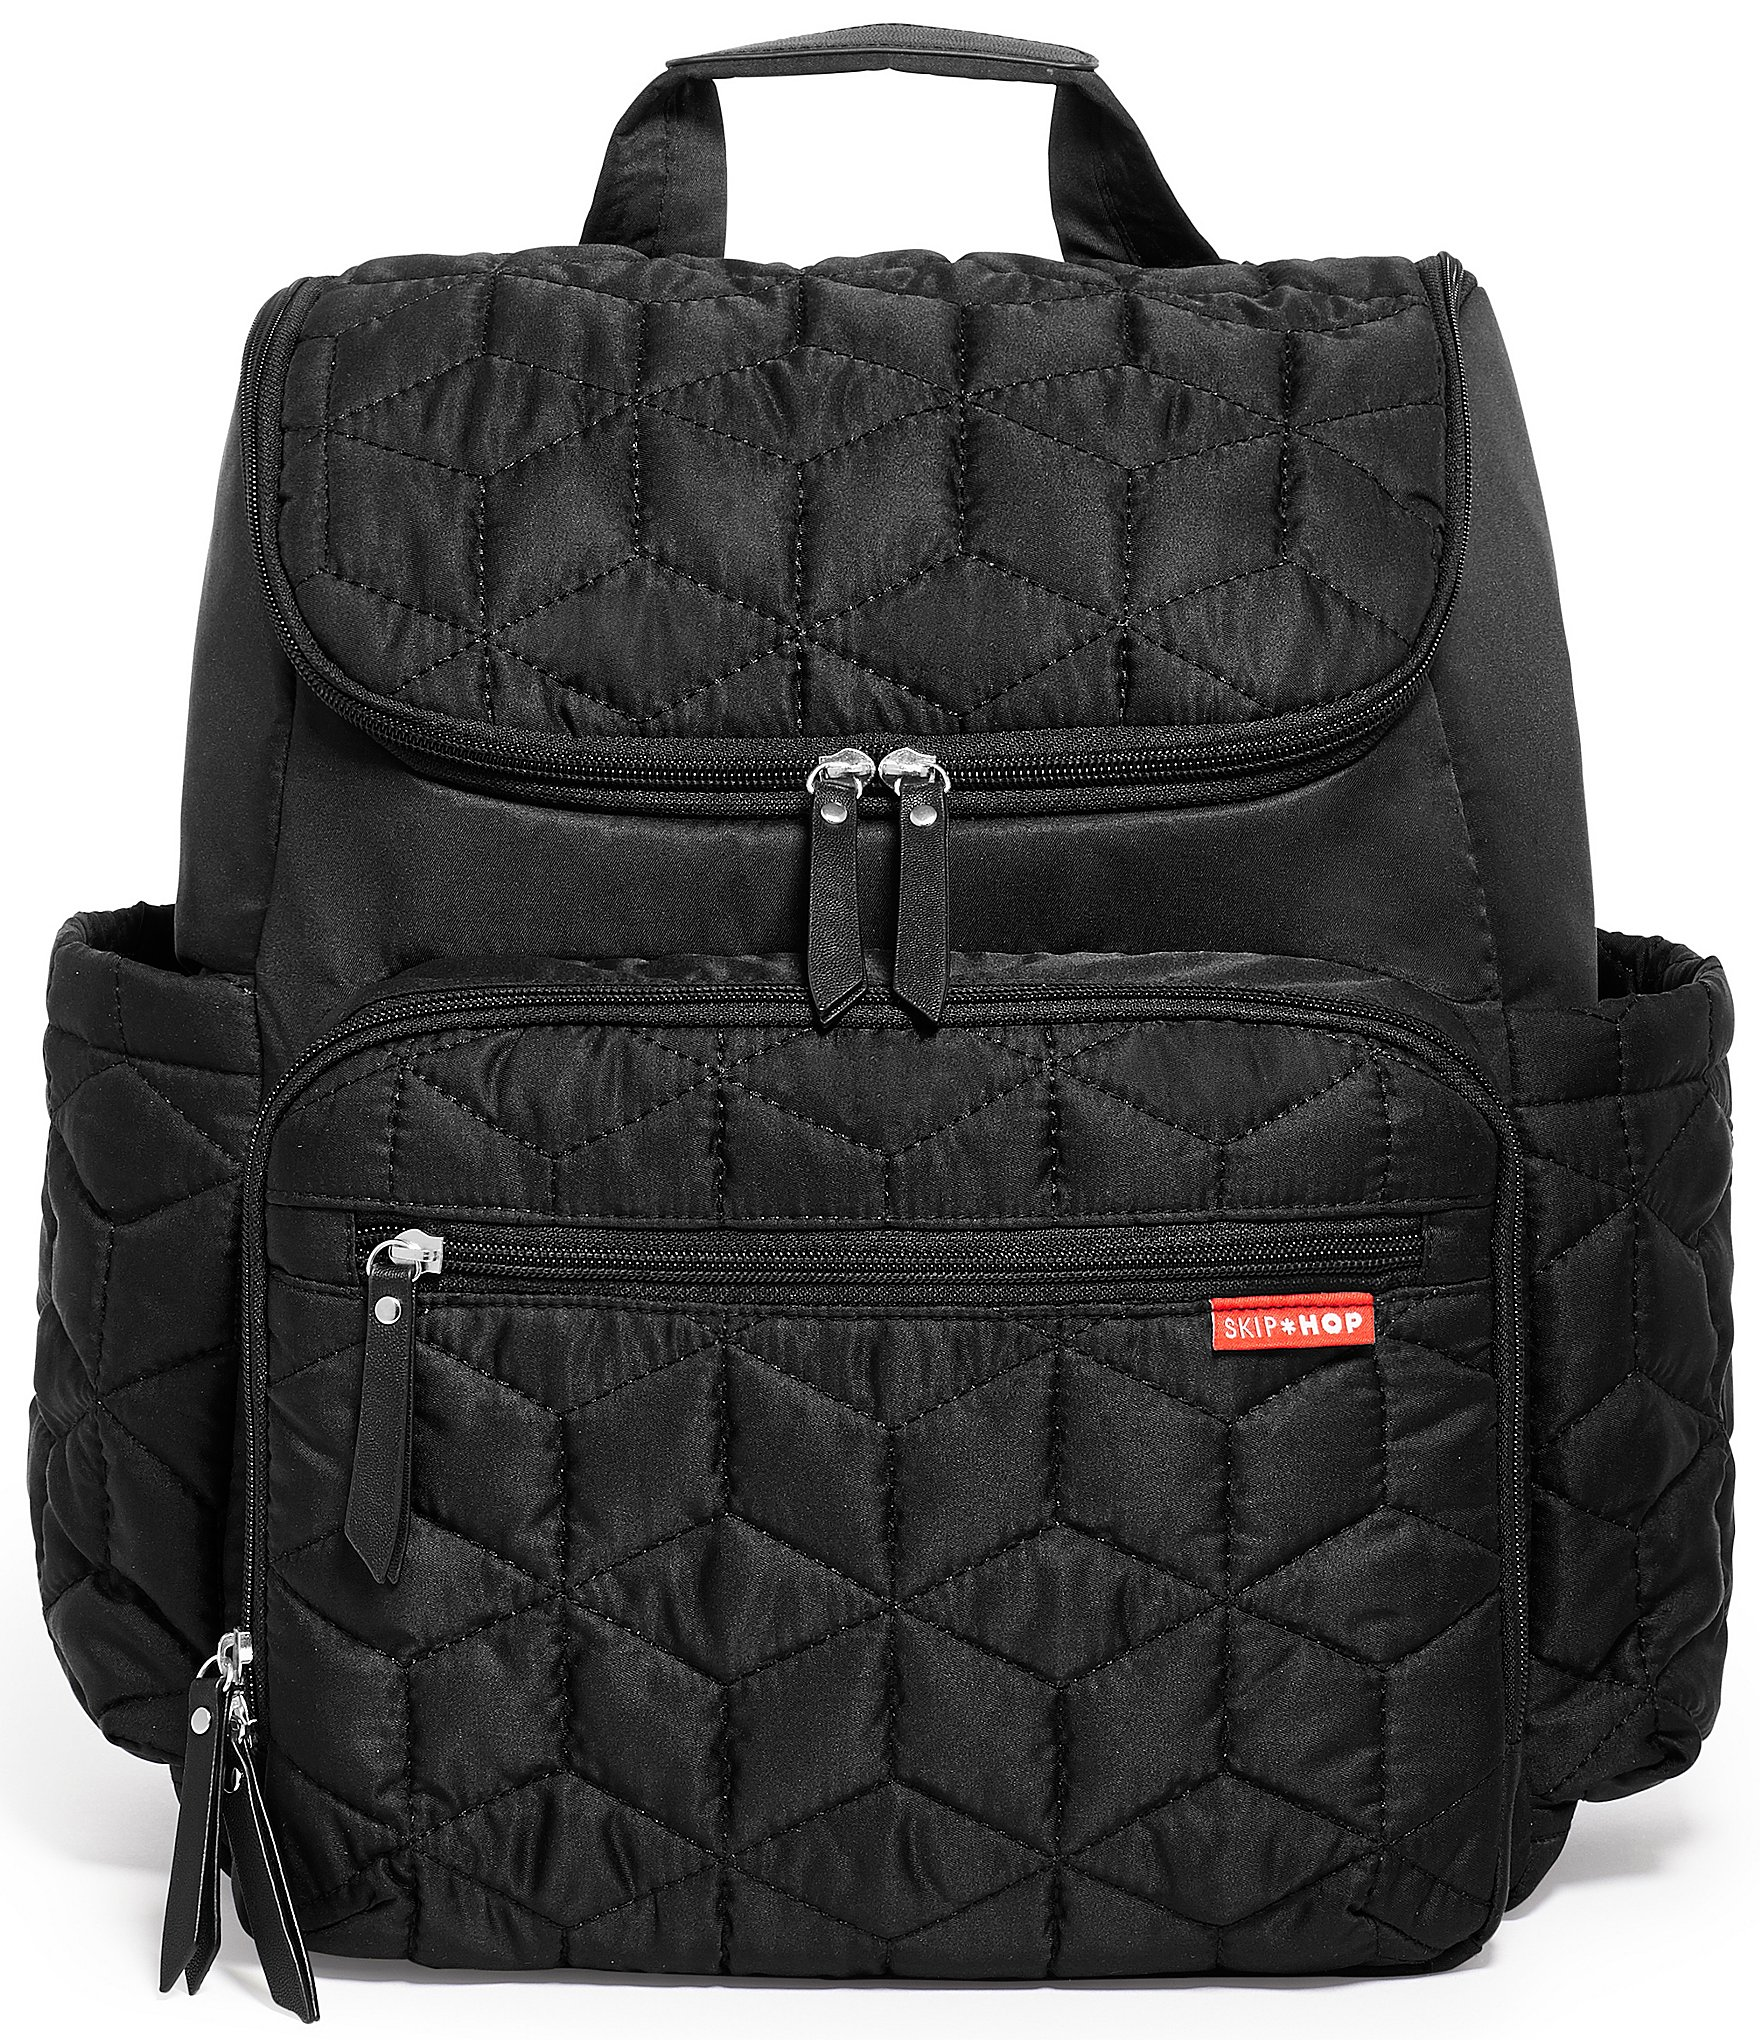 skip hop forma backpack diaper bag dillards. Black Bedroom Furniture Sets. Home Design Ideas